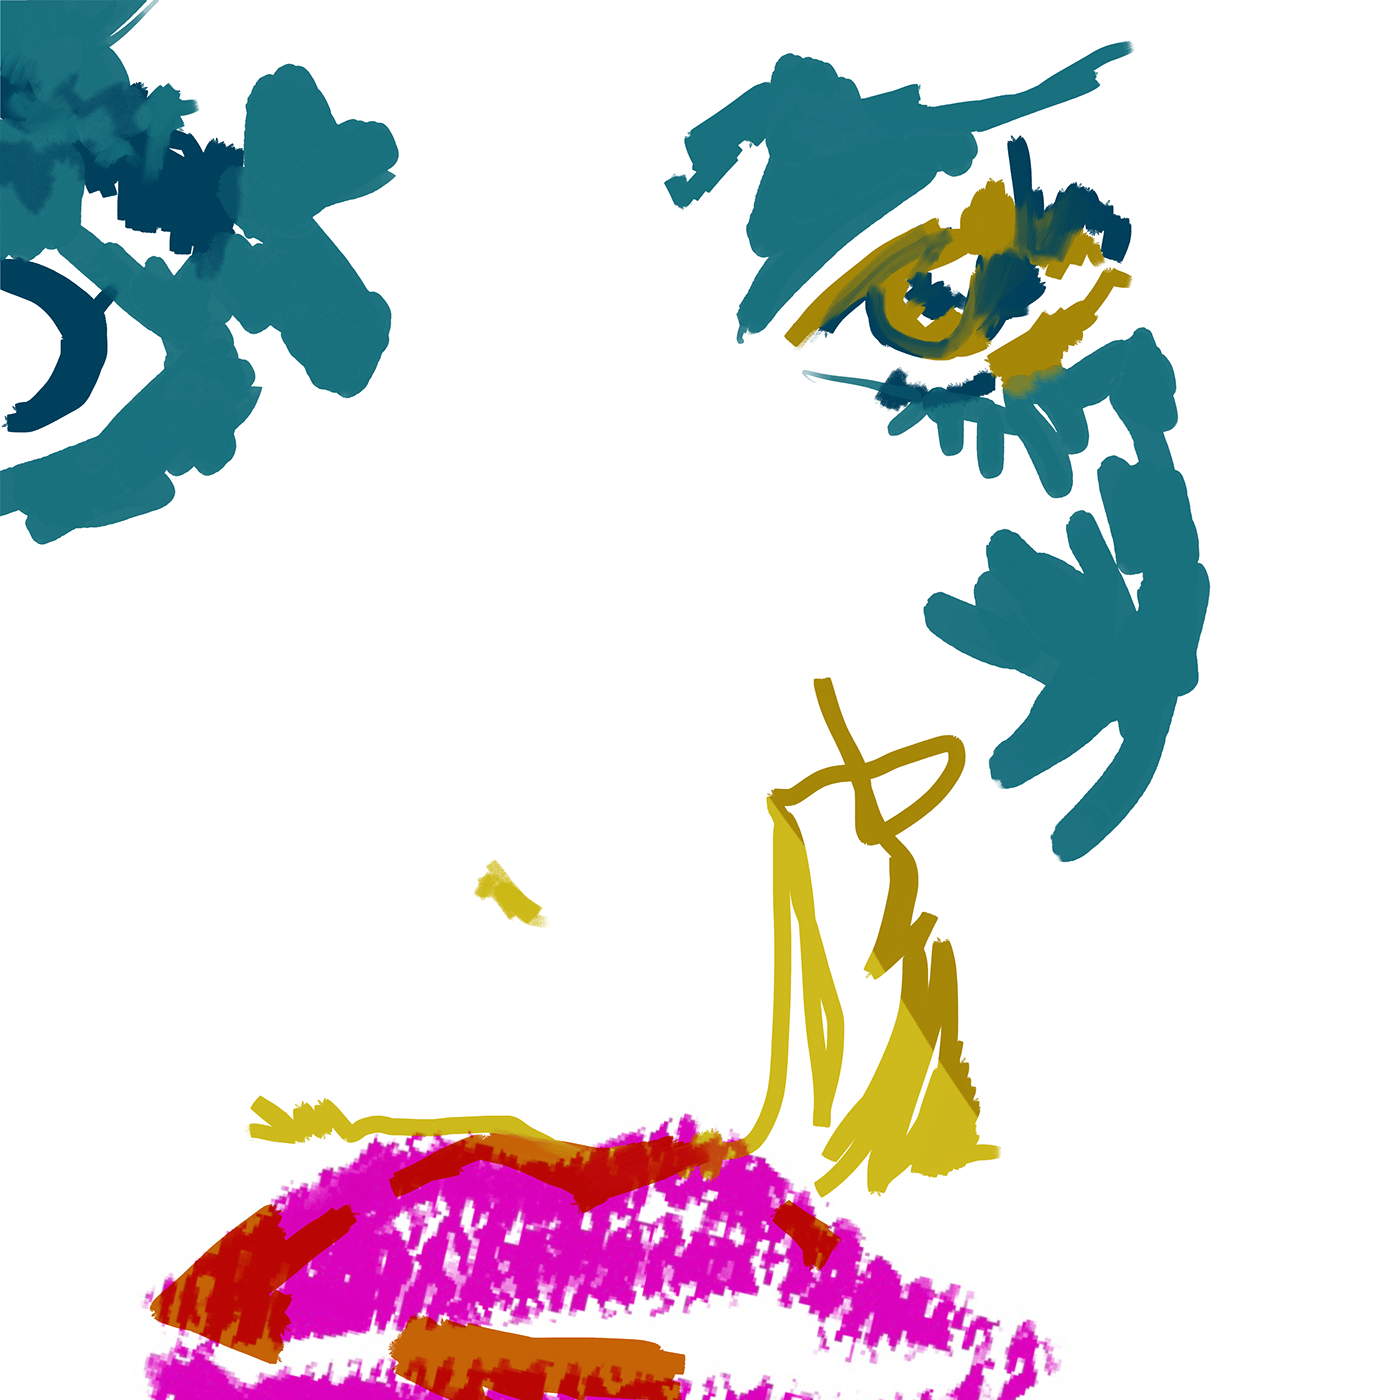 abstract ahead and applause are arms be believe both breathe dark ebony Equal eyes face Fashion  fighting for fuchsia Fun gaga golden idea IN inspire is life linework lips locks Love nose nostril portrait rasta same Thick to White Who with Work  You your